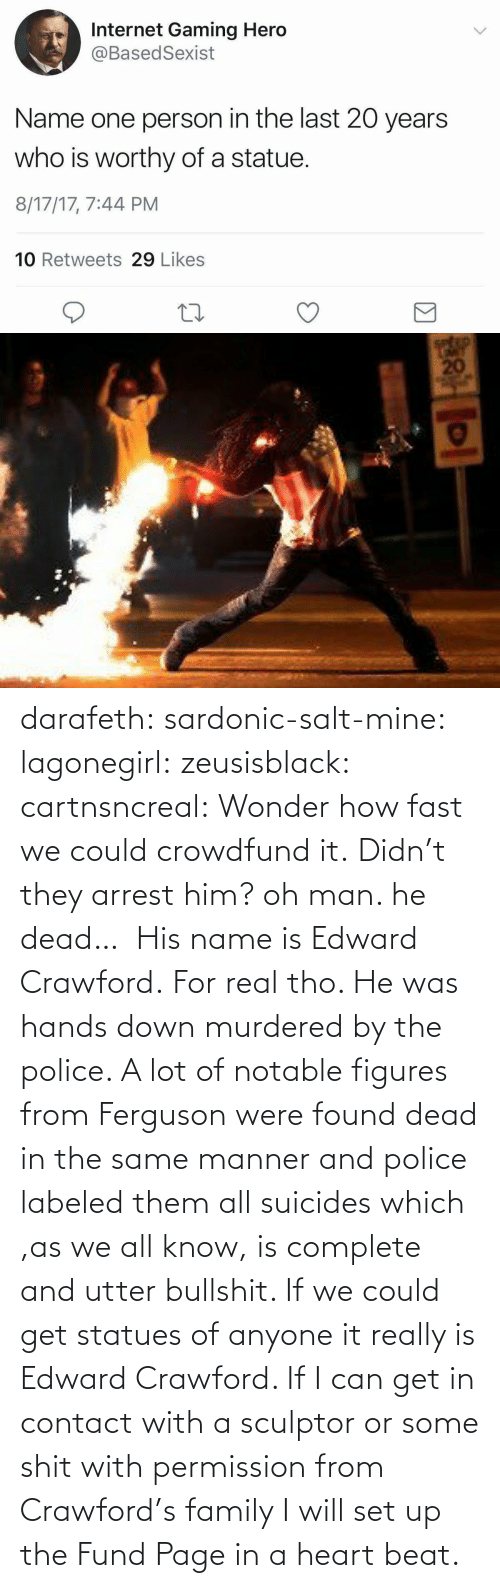 them: darafeth: sardonic-salt-mine:  lagonegirl:  zeusisblack:  cartnsncreal:   Wonder how fast we could crowdfund it.    Didn't they arrest him?  oh man. he dead…   His name is Edward Crawford.   For real tho. He was hands down murdered by the police. A lot of notable figures from Ferguson were found dead in the same manner and police labeled them all suicides which ,as we all know, is complete and utter bullshit.  If we could get statues of anyone it really is Edward Crawford. If I can get in contact with a sculptor or some shit with permission from Crawford's family I will set up the Fund Page in a heart beat.